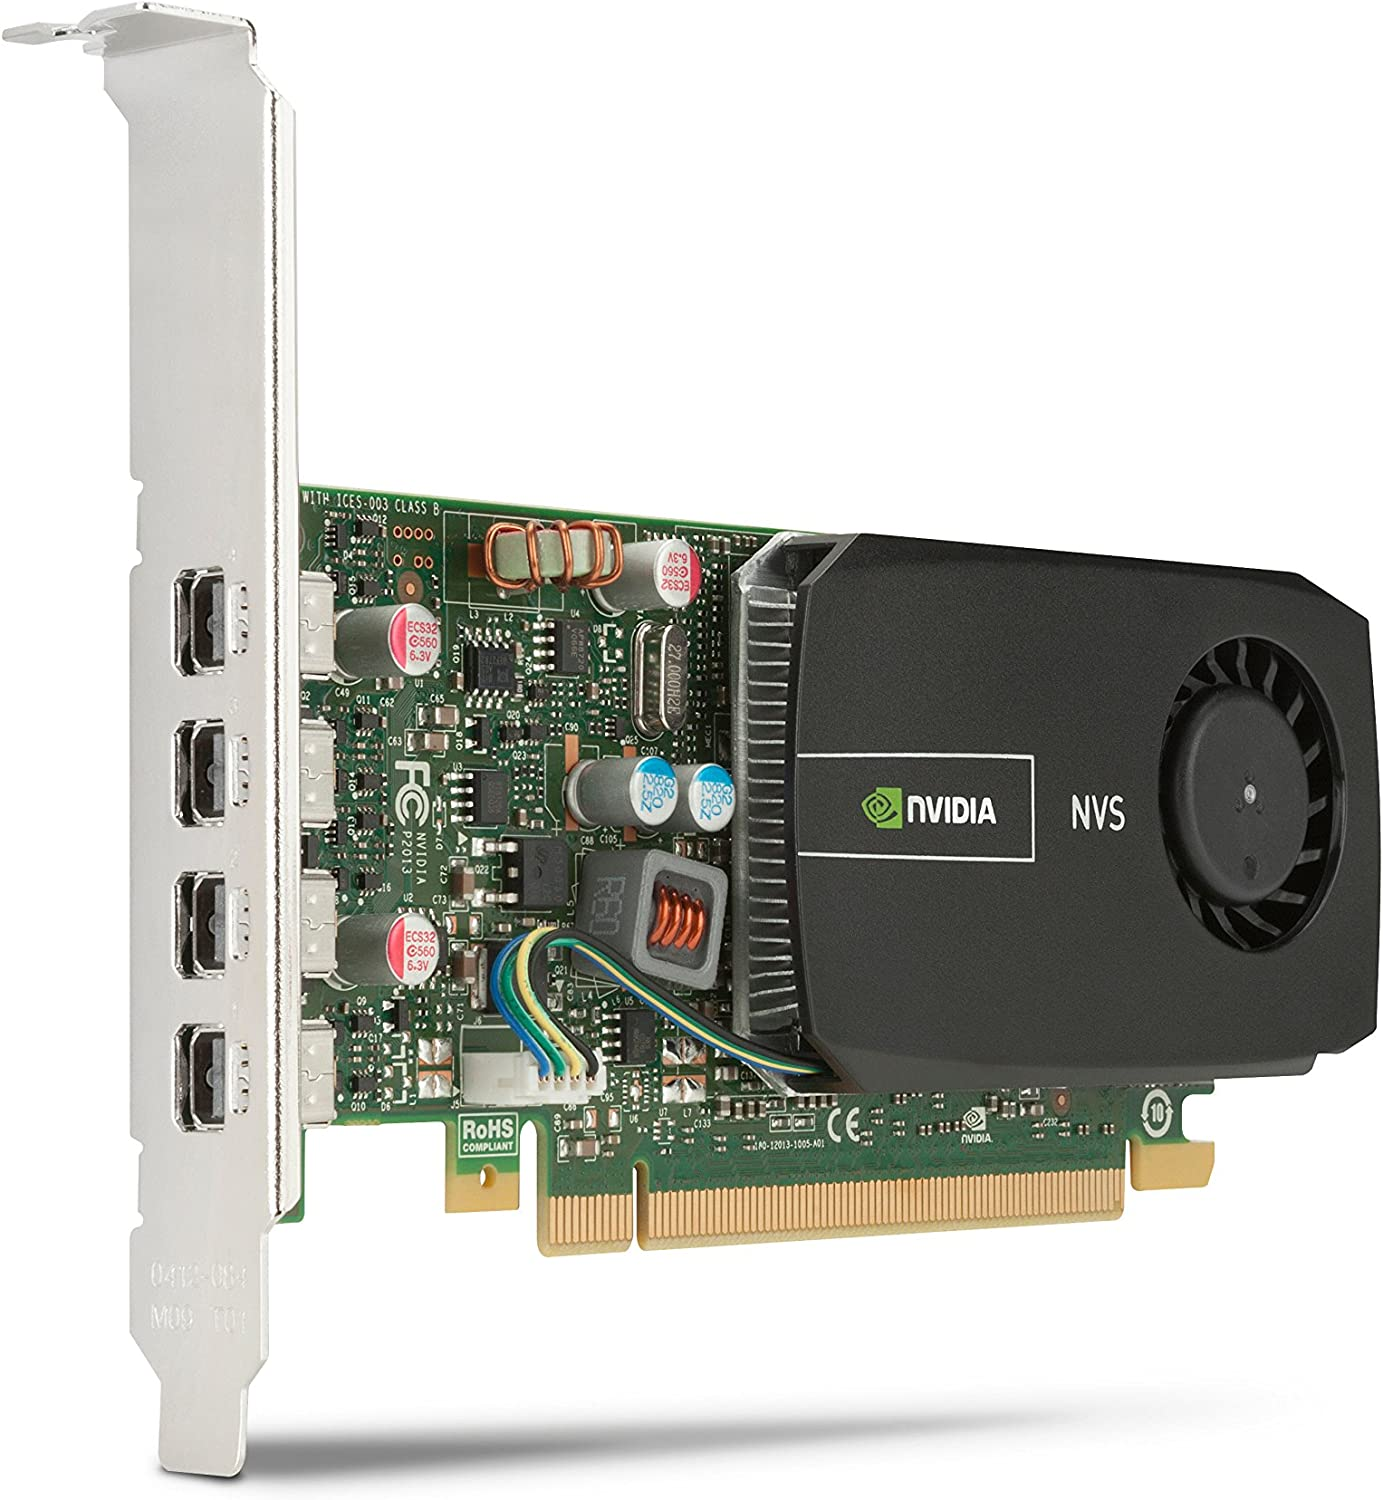 HP Quadro 510 Graphic Card - 797 MHz Core - 2 GB DDR3 SDRAM - PCI Express 2.0 x16 C2J98AA